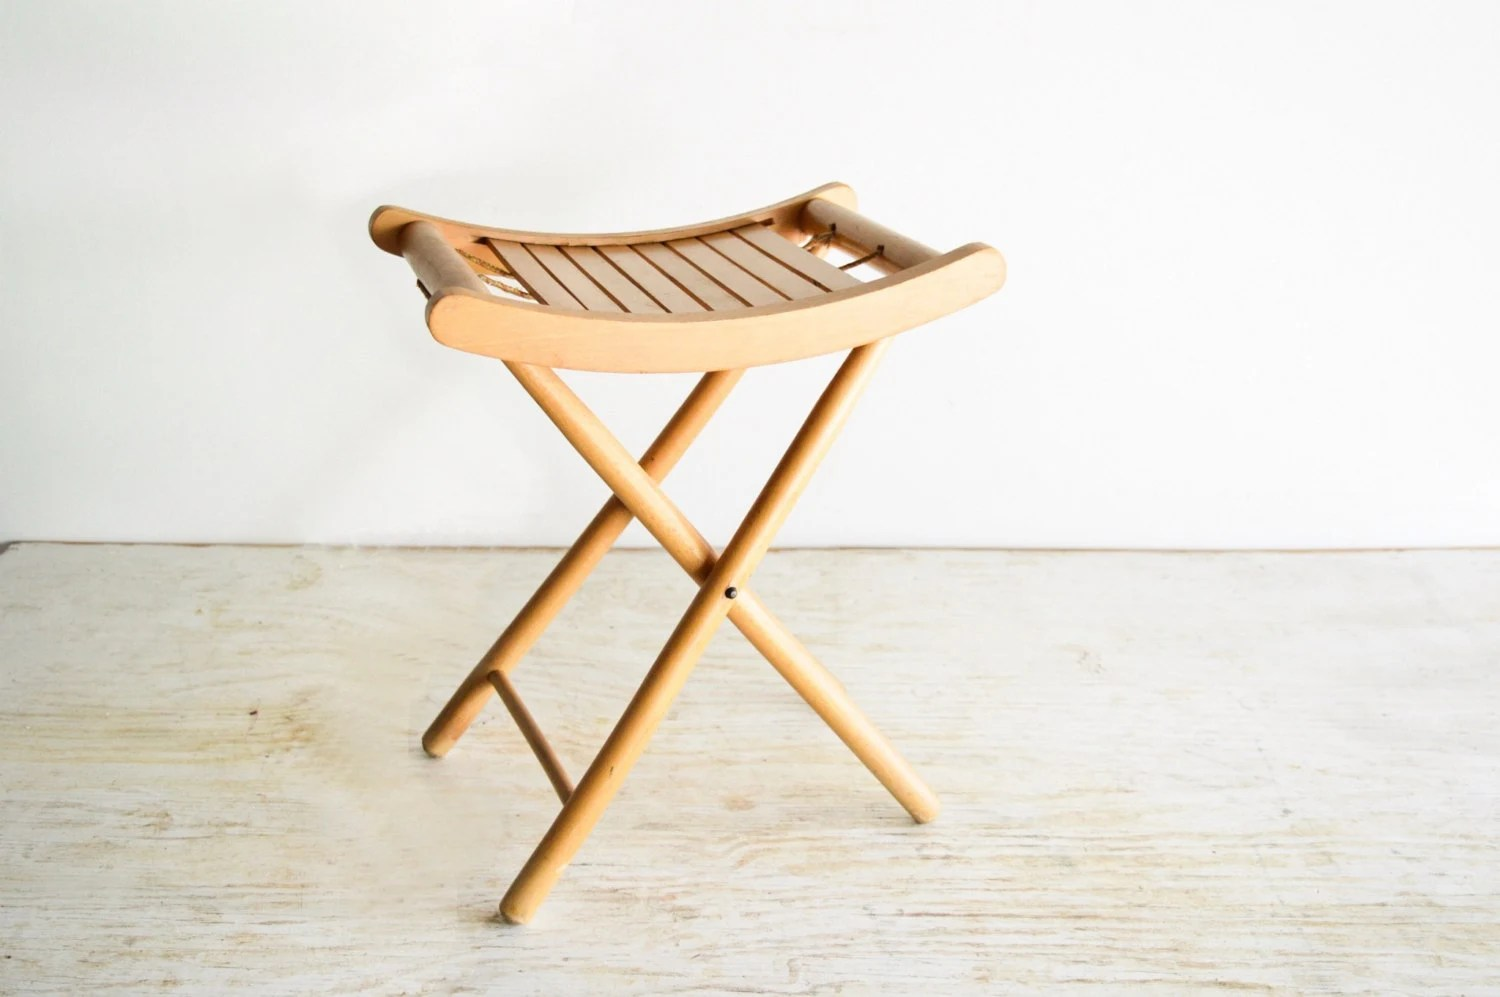 wood camp chair eames repair stool folding camping by